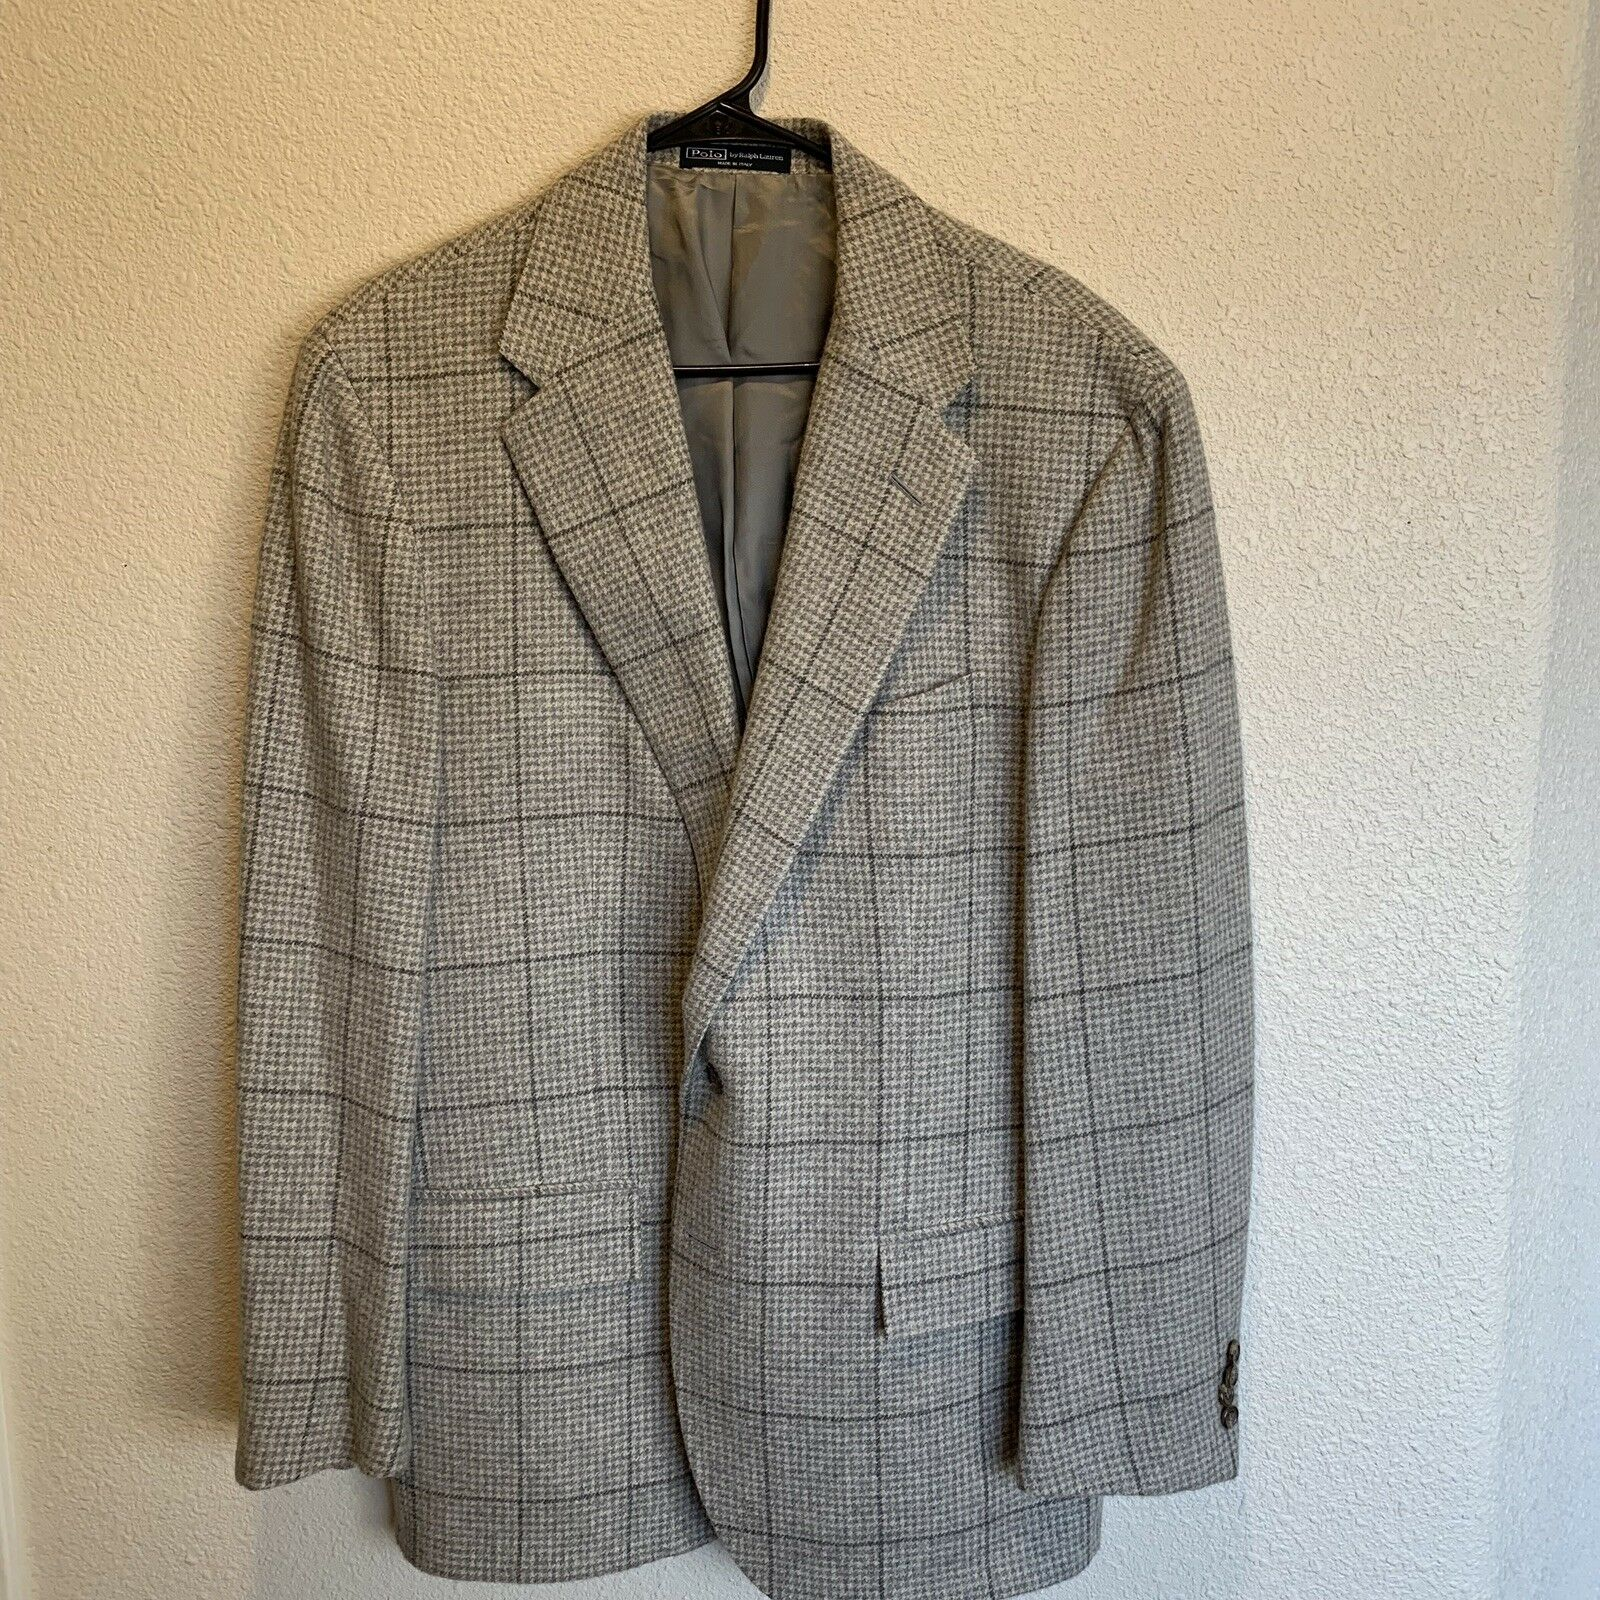 Polo by Ralph Lauren vintage men's blazer.46 Reg. Made In ,100